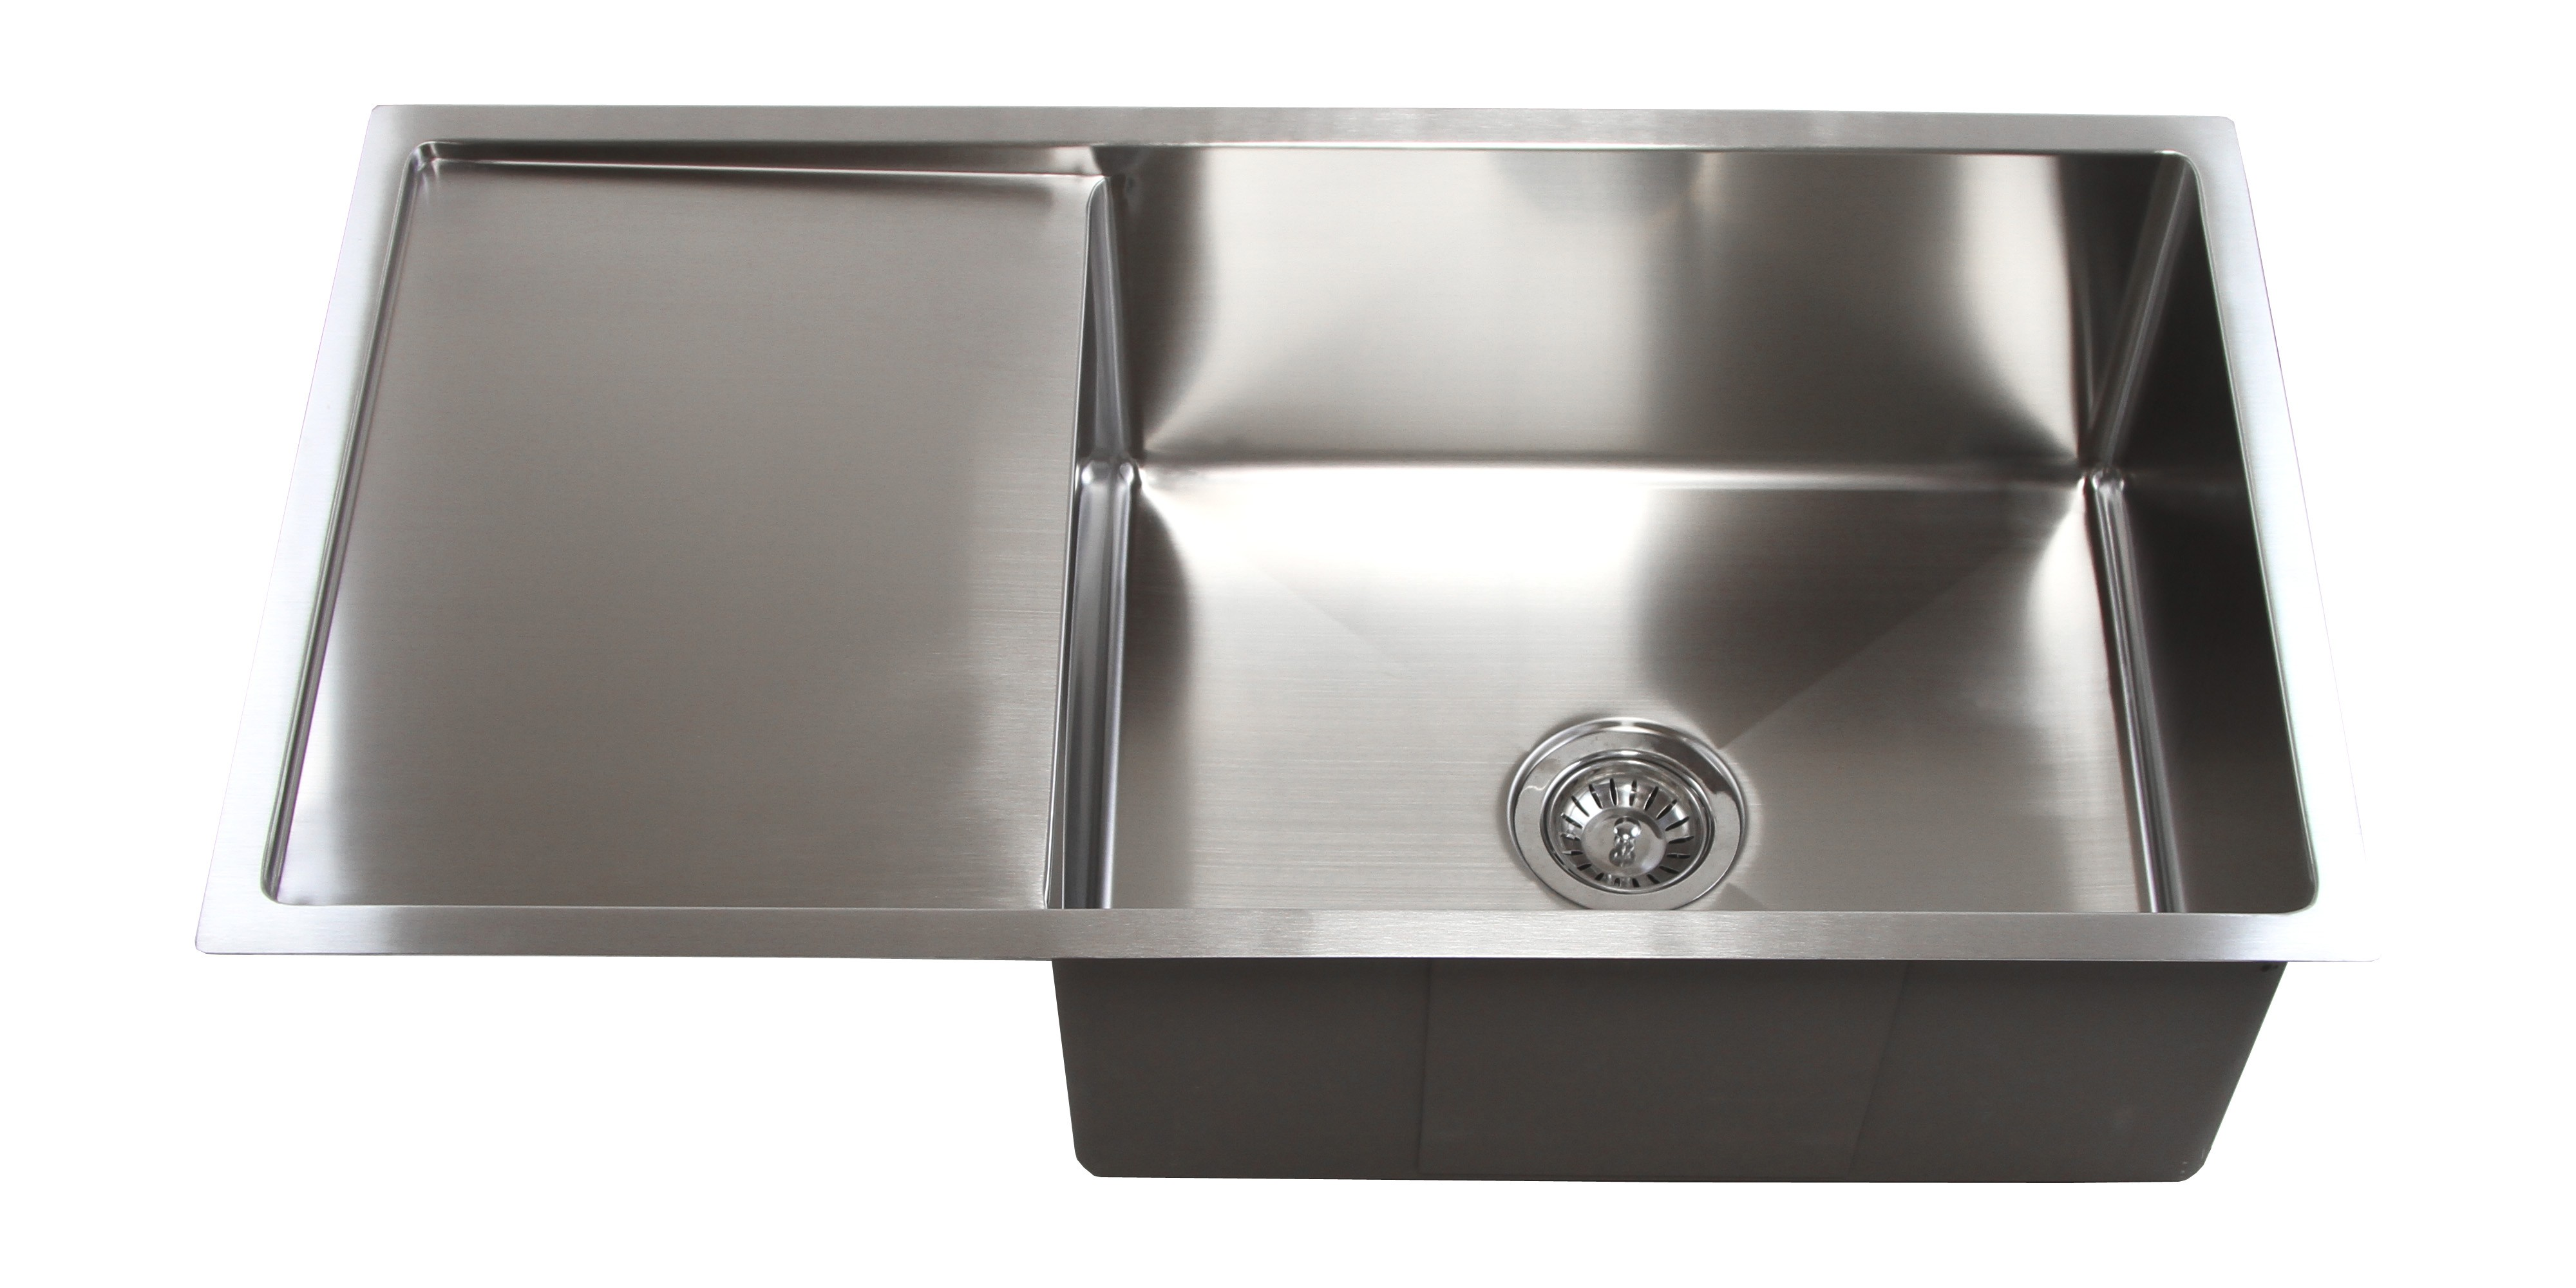 Undermount Kitchen Sink With Drainboard : ... Design Undermount Single Bowl Kitchen Sink with 13 Inch Drain Board